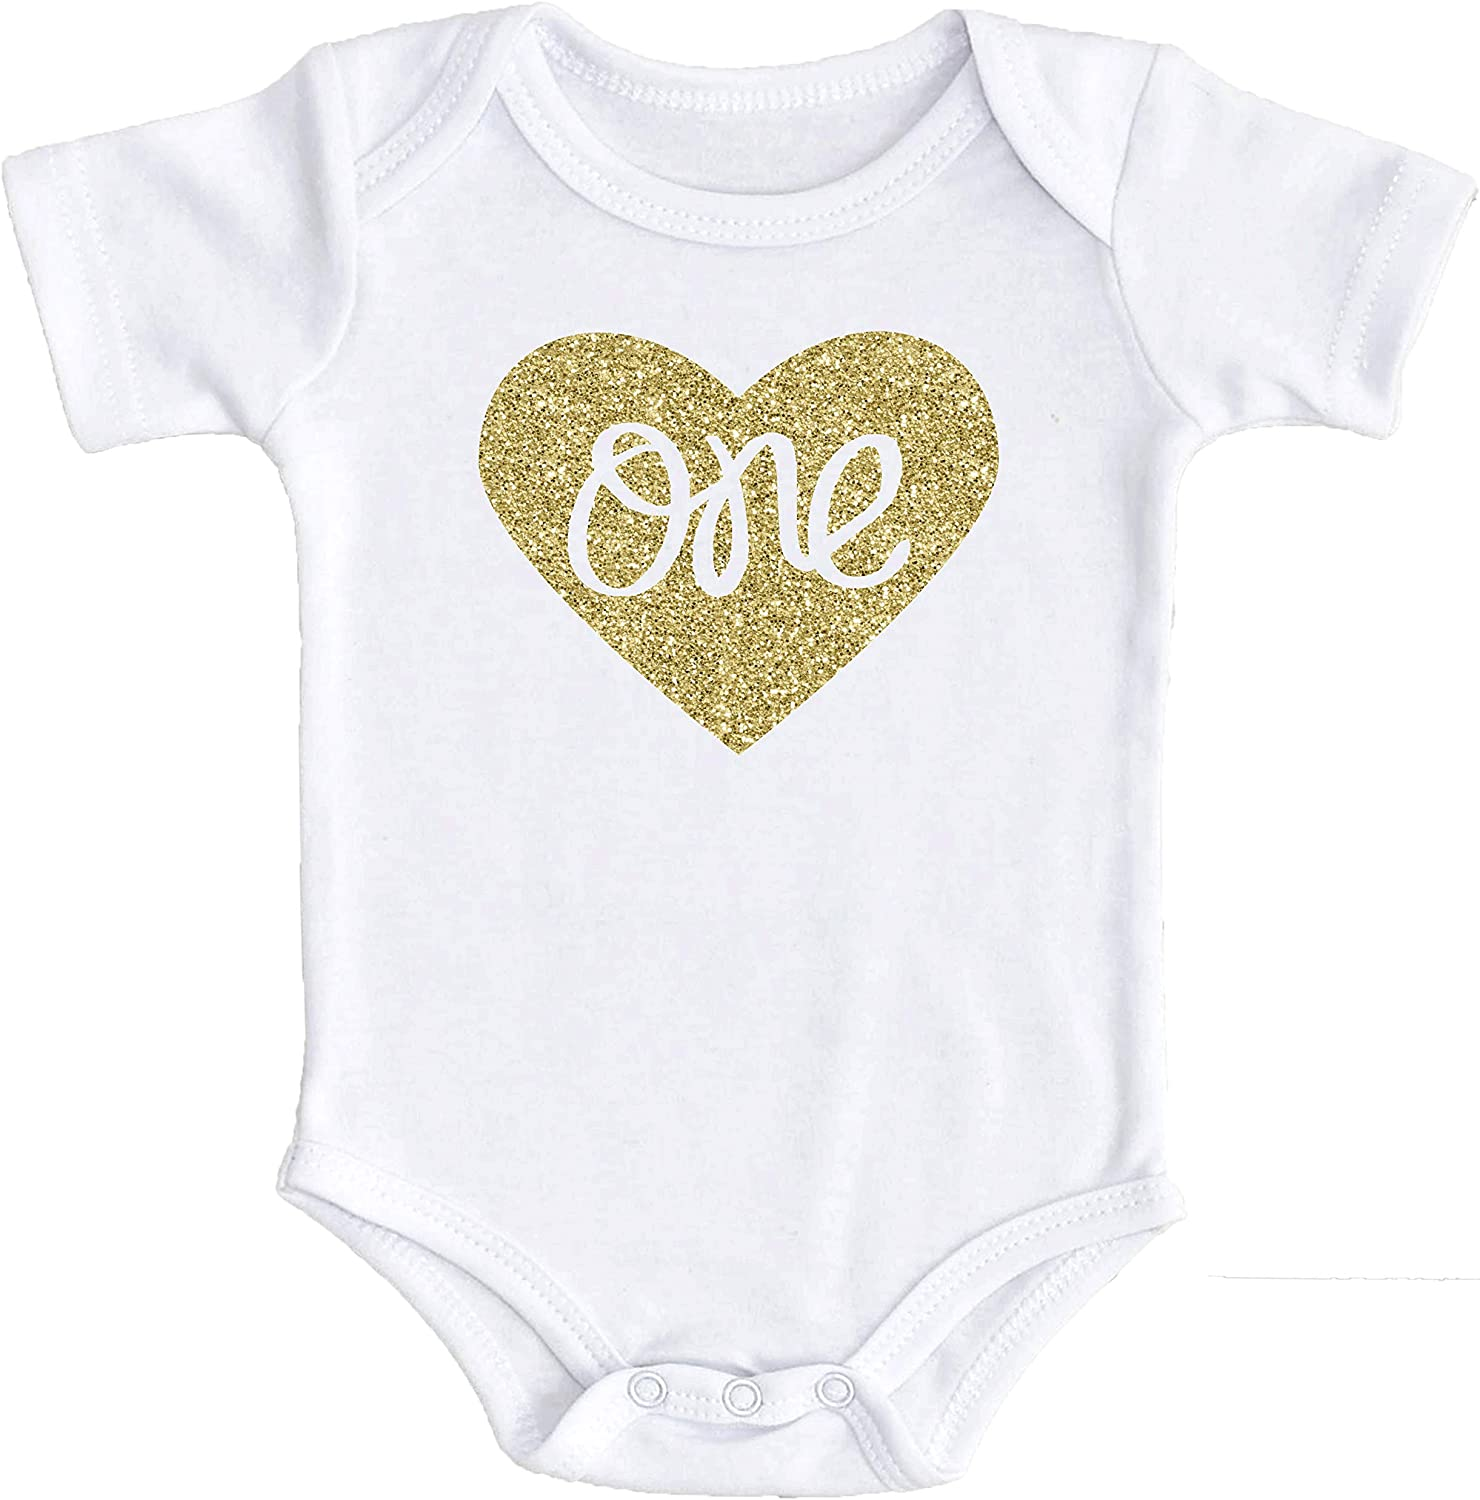 Baby Girls First Birthday Bodysuit Sparkly Gold One Inside Heart Design 1st Birthday Outfit Girl